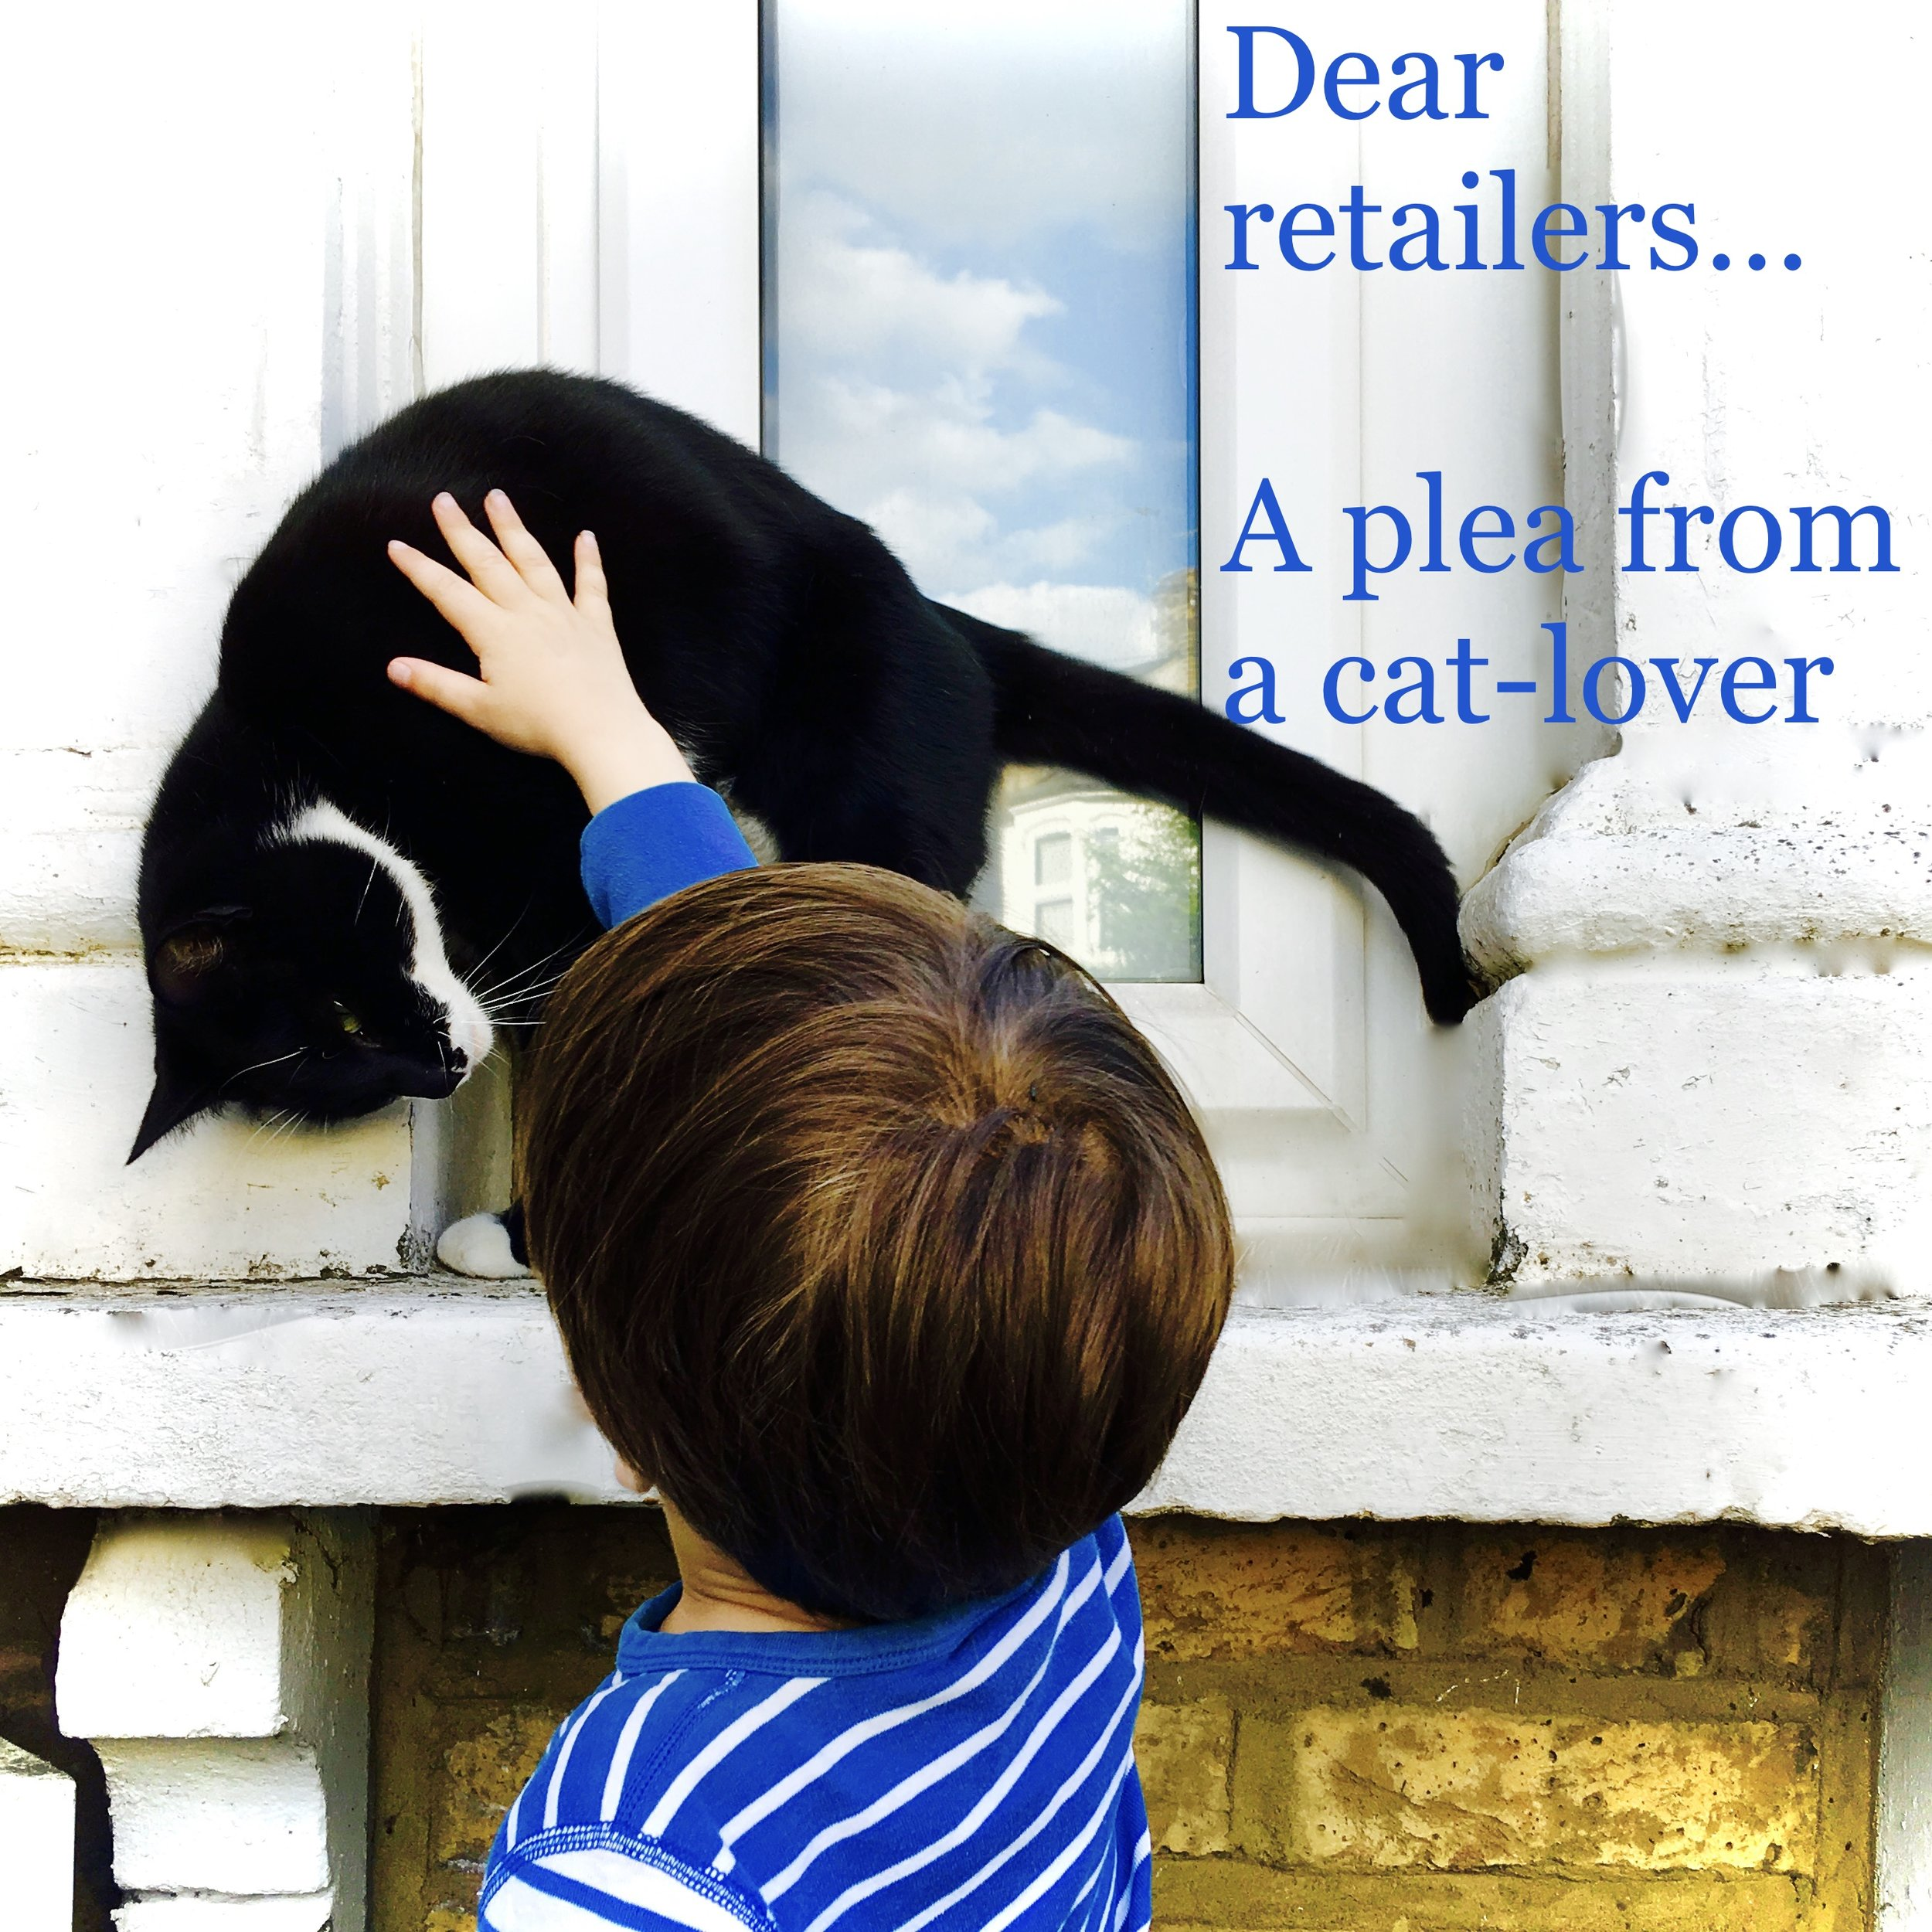 An open letter from a three year old cat lover